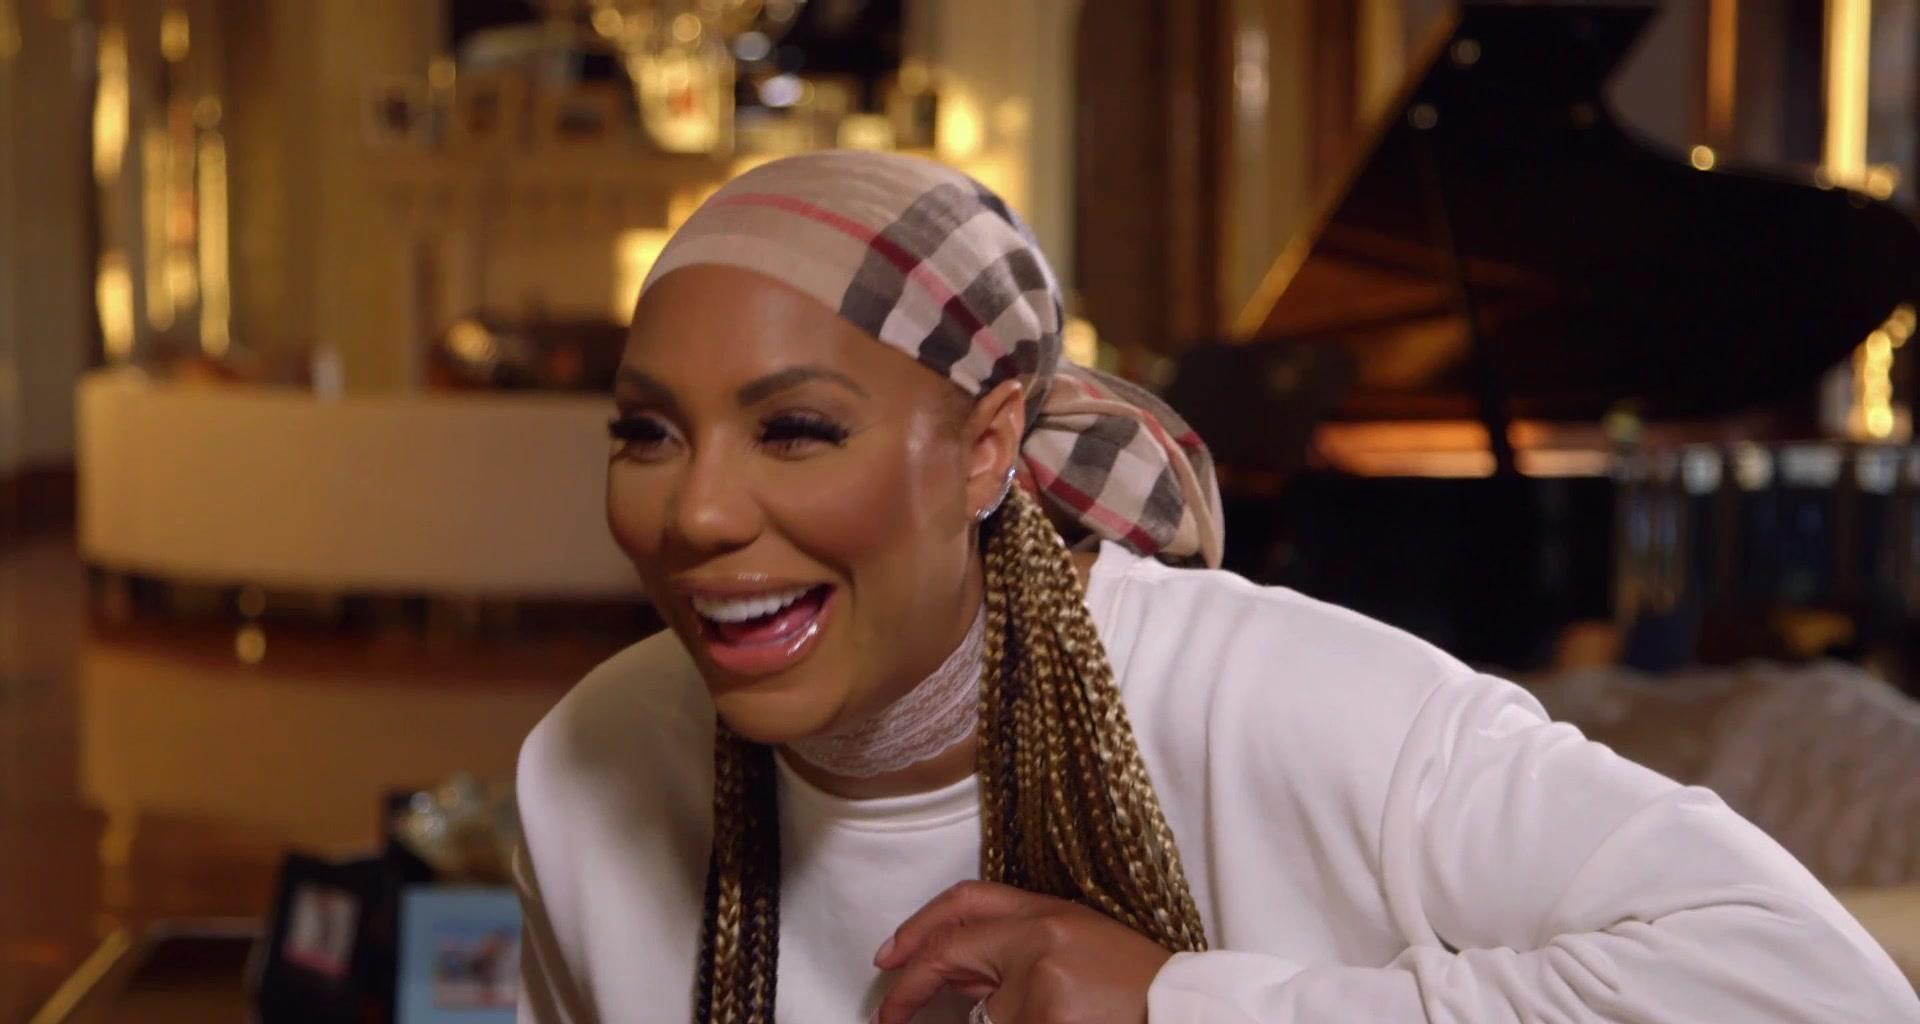 Tamar Braxton's Fans Are Laughing Their Hearts Out After Seeing A Video From CBB - She Should 'Star In A Horror Film!'